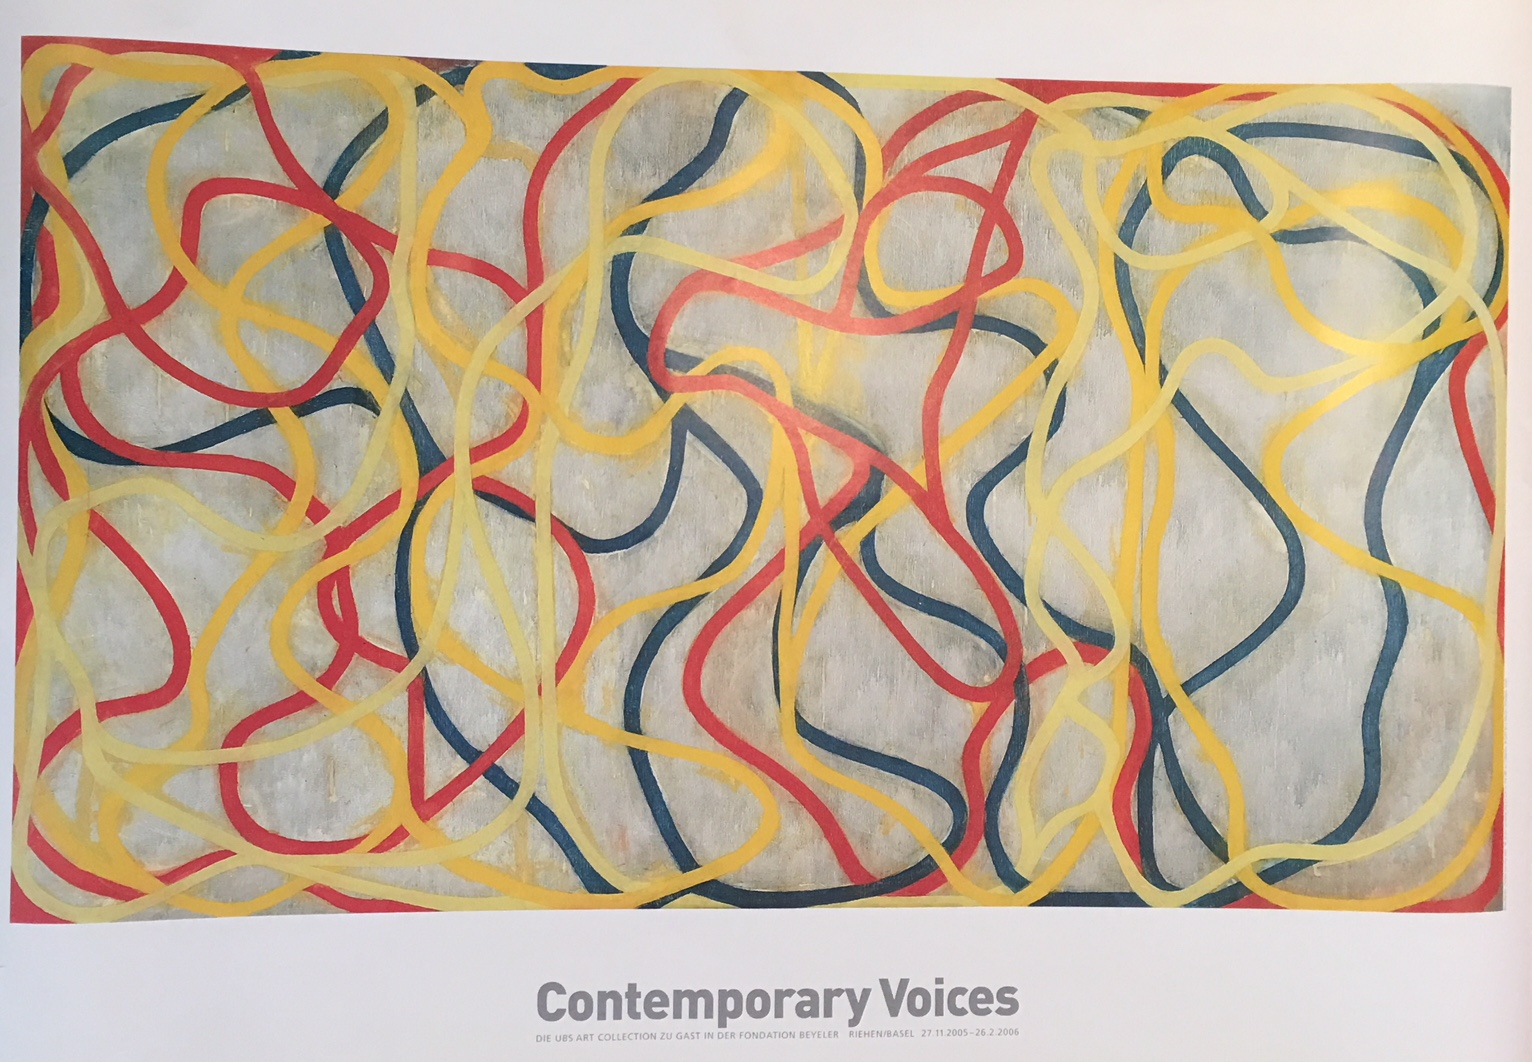 Contemporary Voices Fondation Beyeler Original Vintage Poster